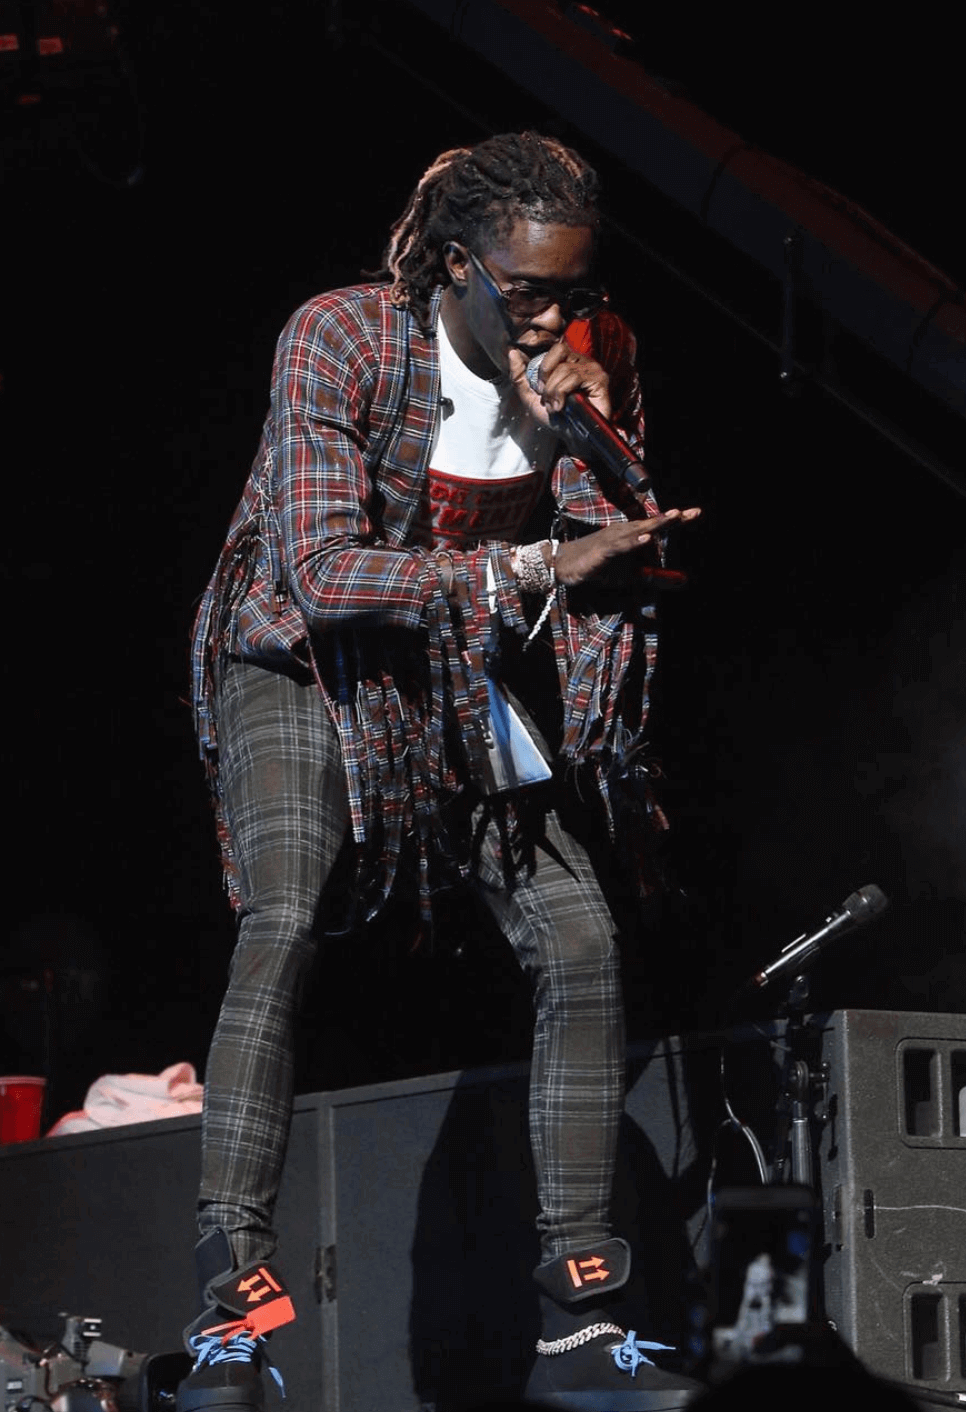 Young Thug in the Off White Sneakers